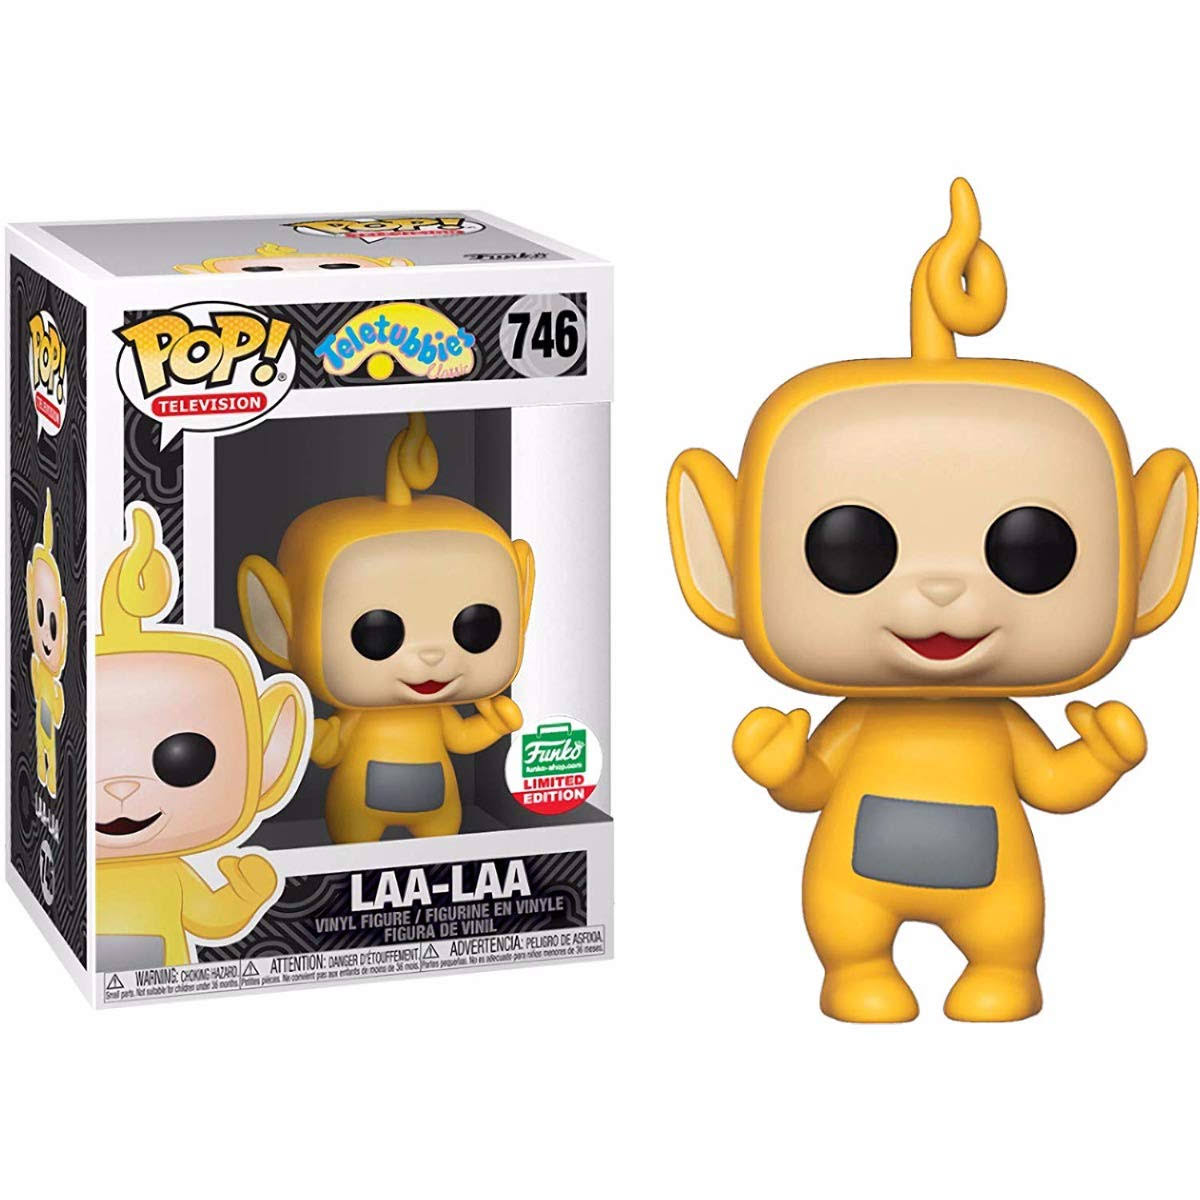 Teletubbies Funko Pop! TV Laa-Laa Vinyl Figure #746